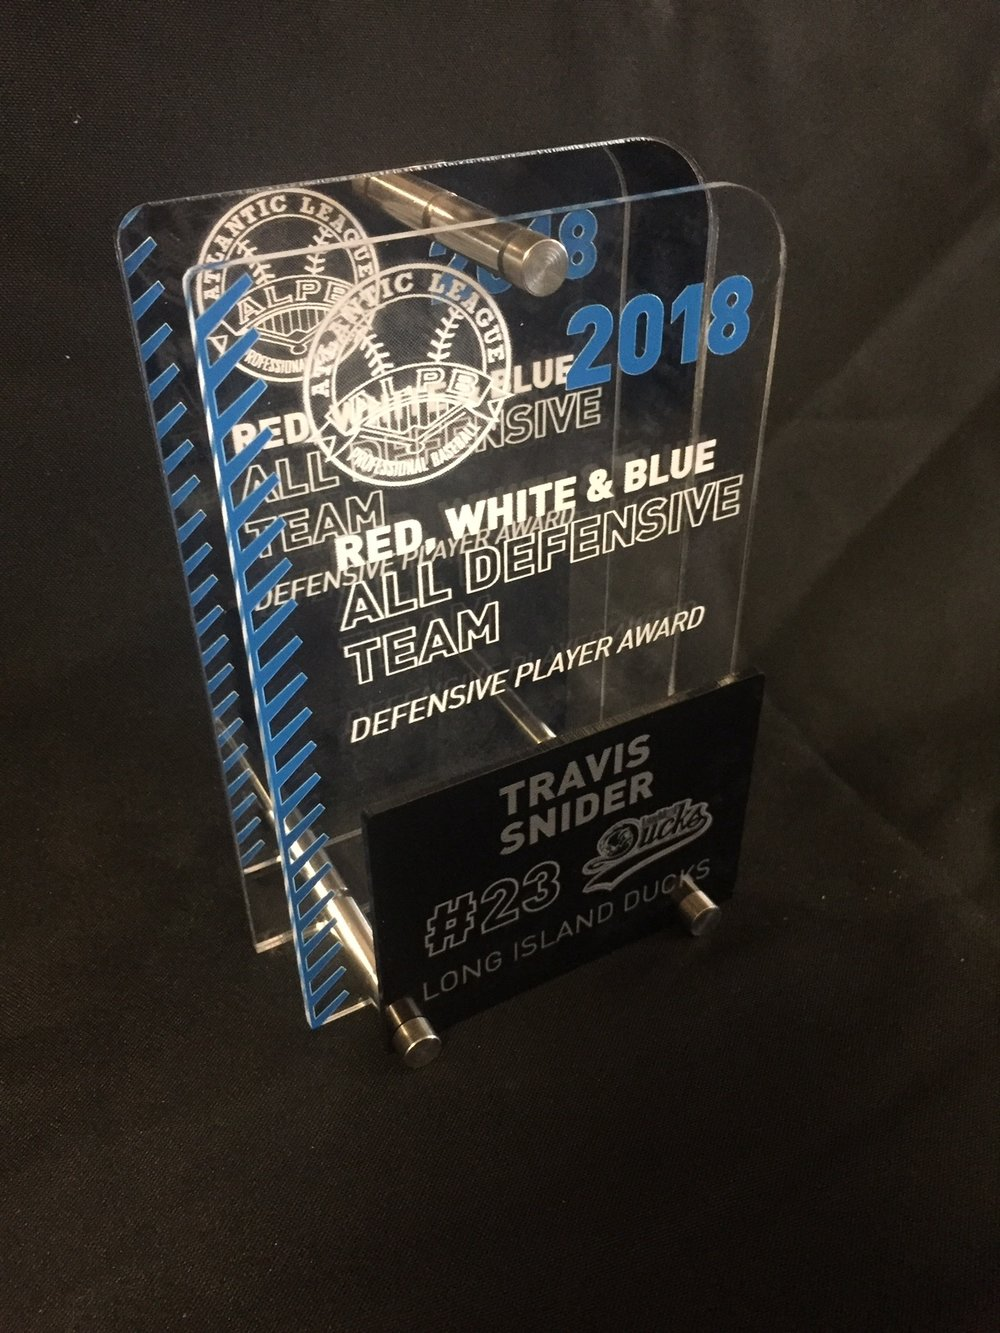 ALPB - Red, White, & Blue Division All-Star Award  Contact us for pricing information.